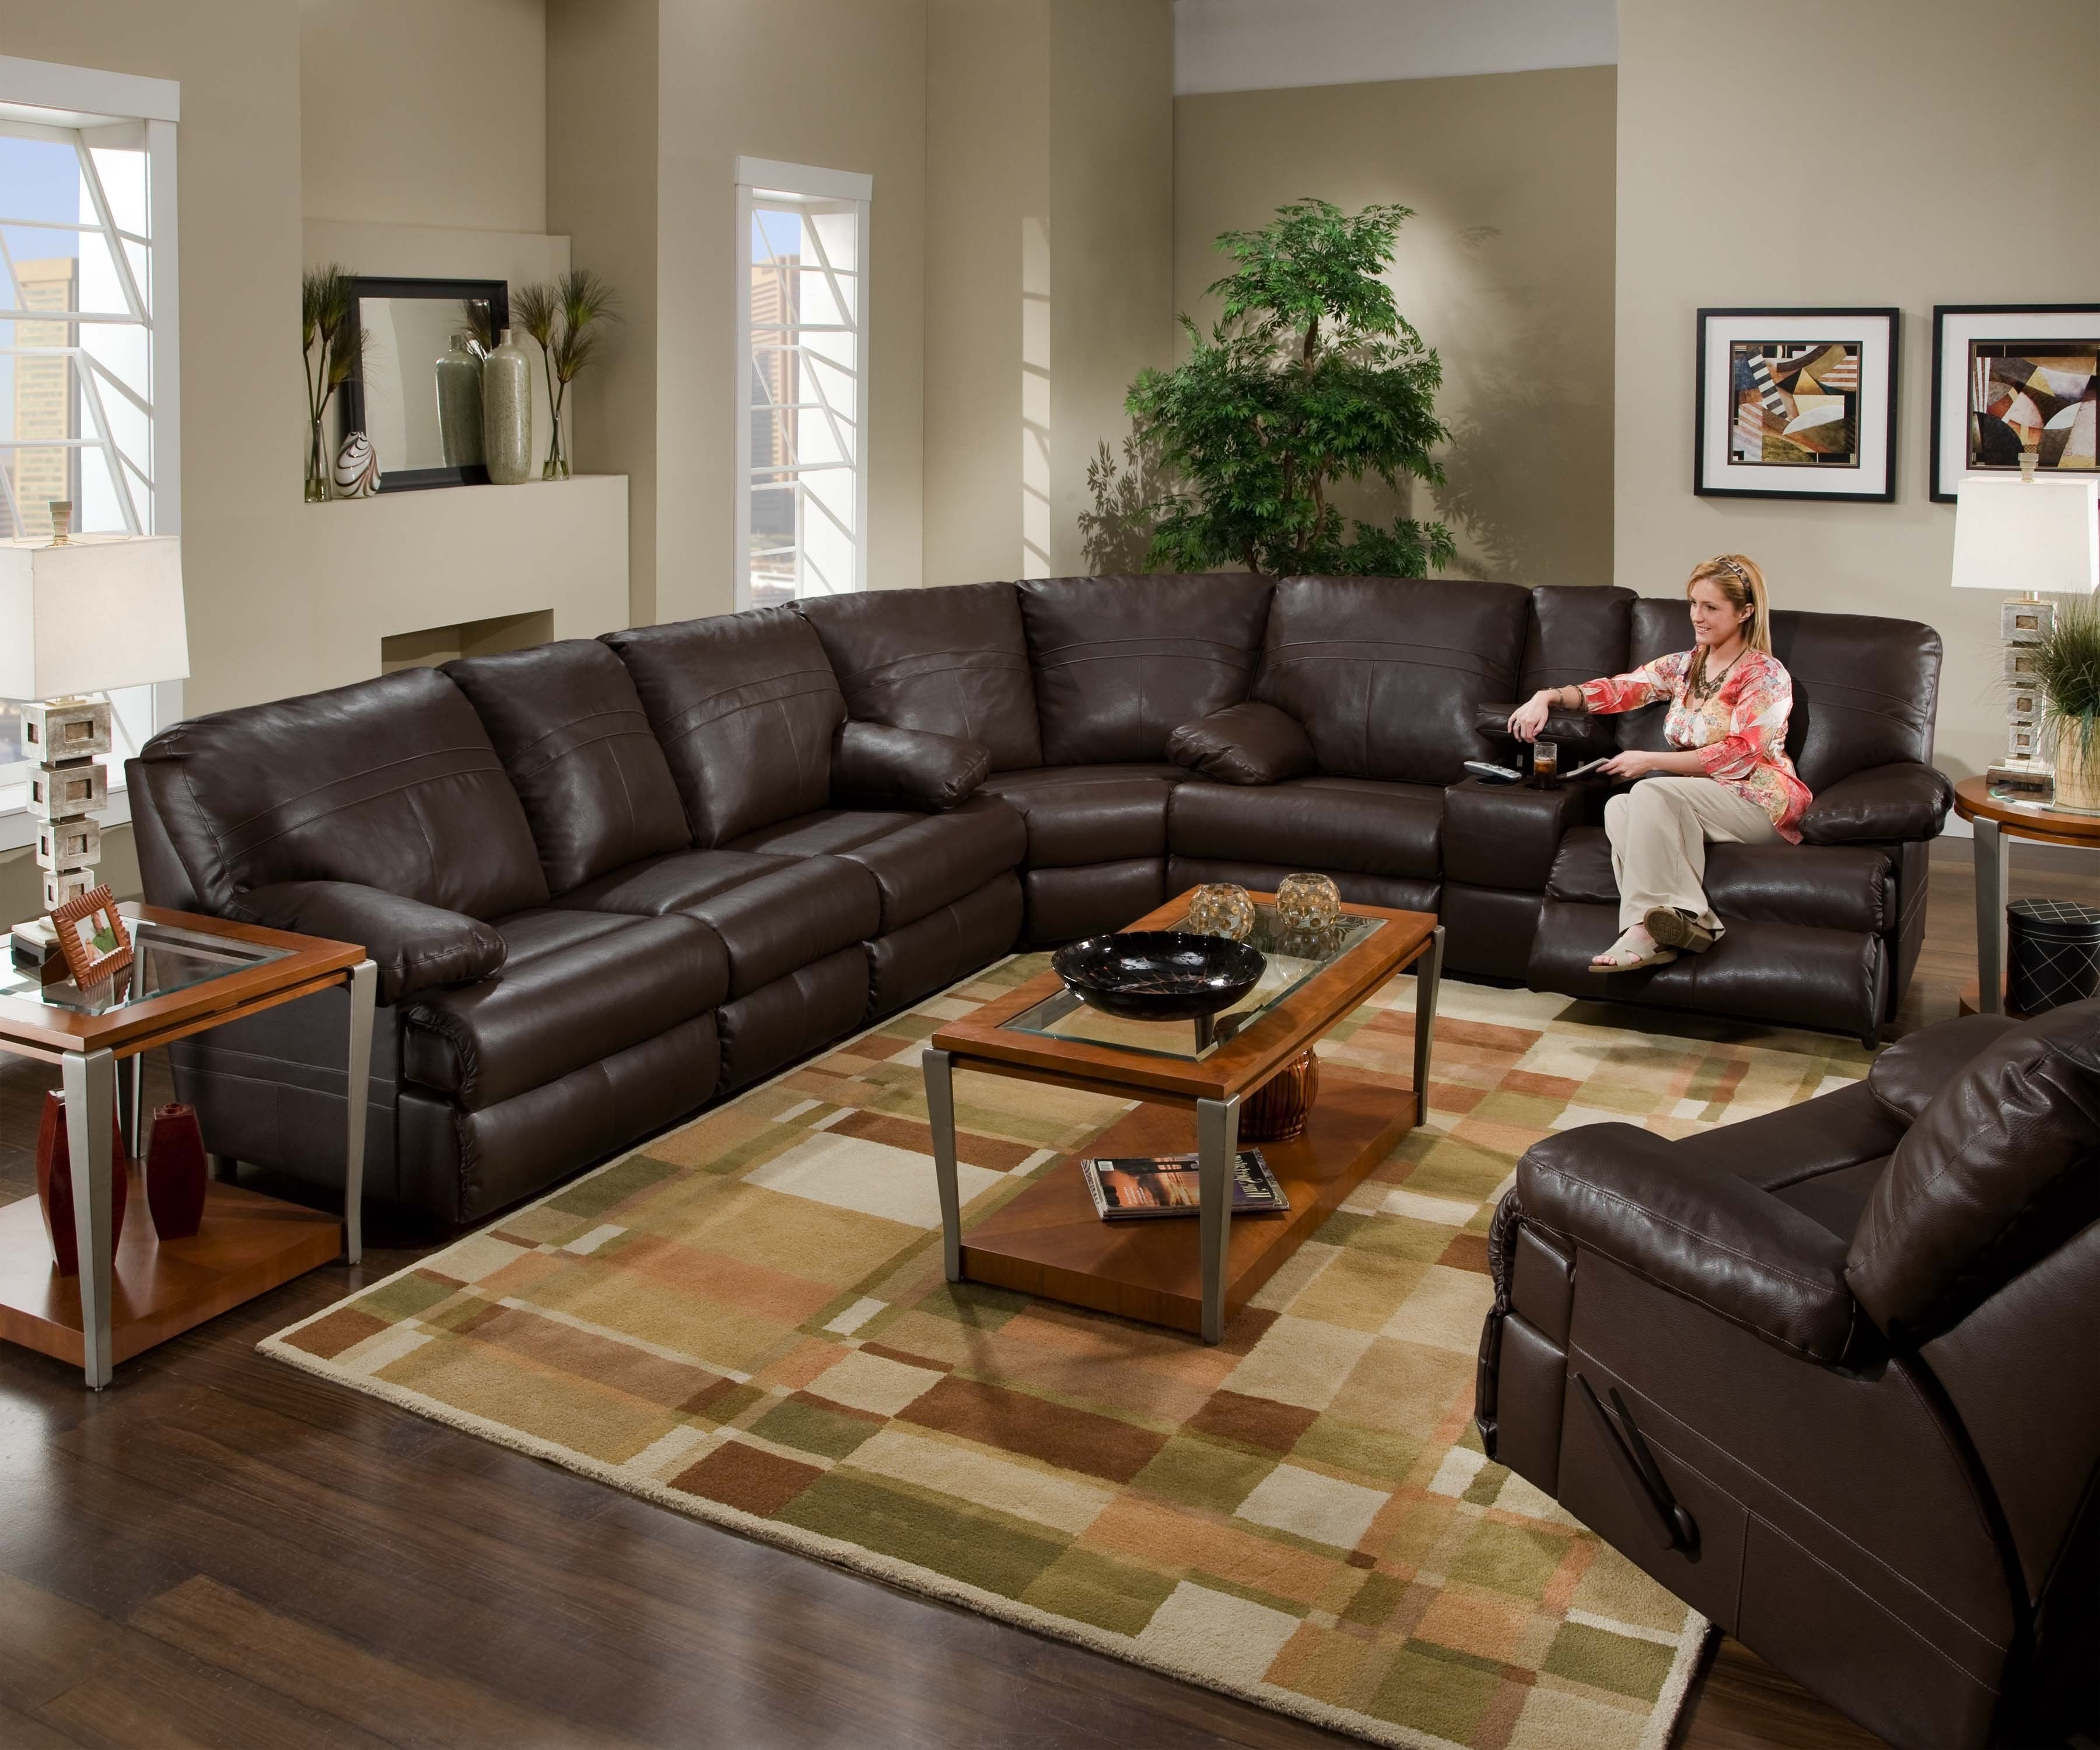 Halifax Sectional Sofas Inside Famous Sectional Leather Couch With Recliners. (View 5 of 15)